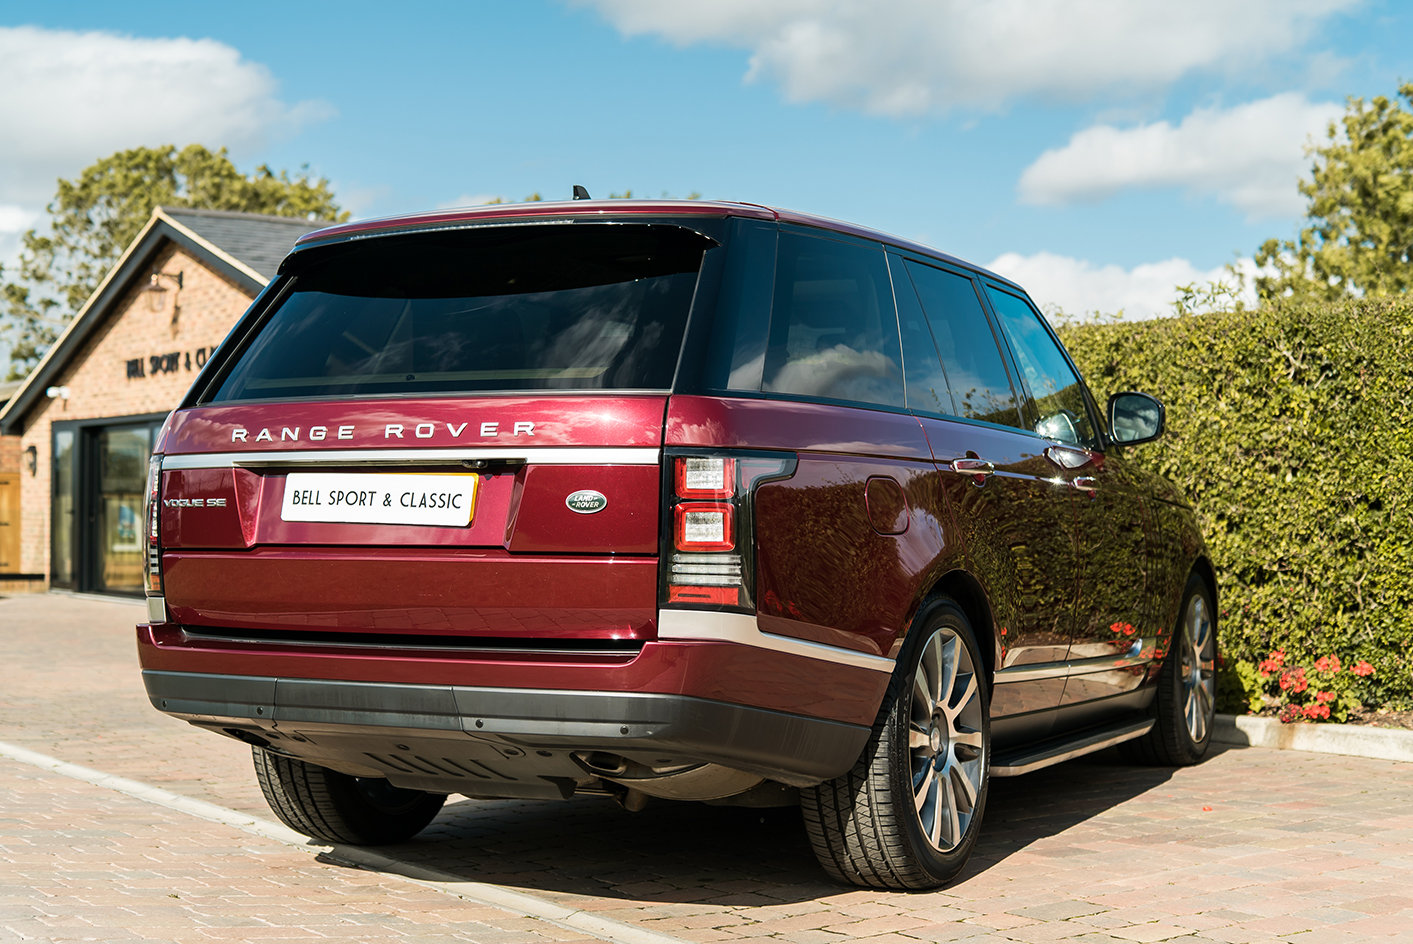 2016 Range Rover 3.0 TD Vogue SE Auto For Sale (picture 2 of 6)